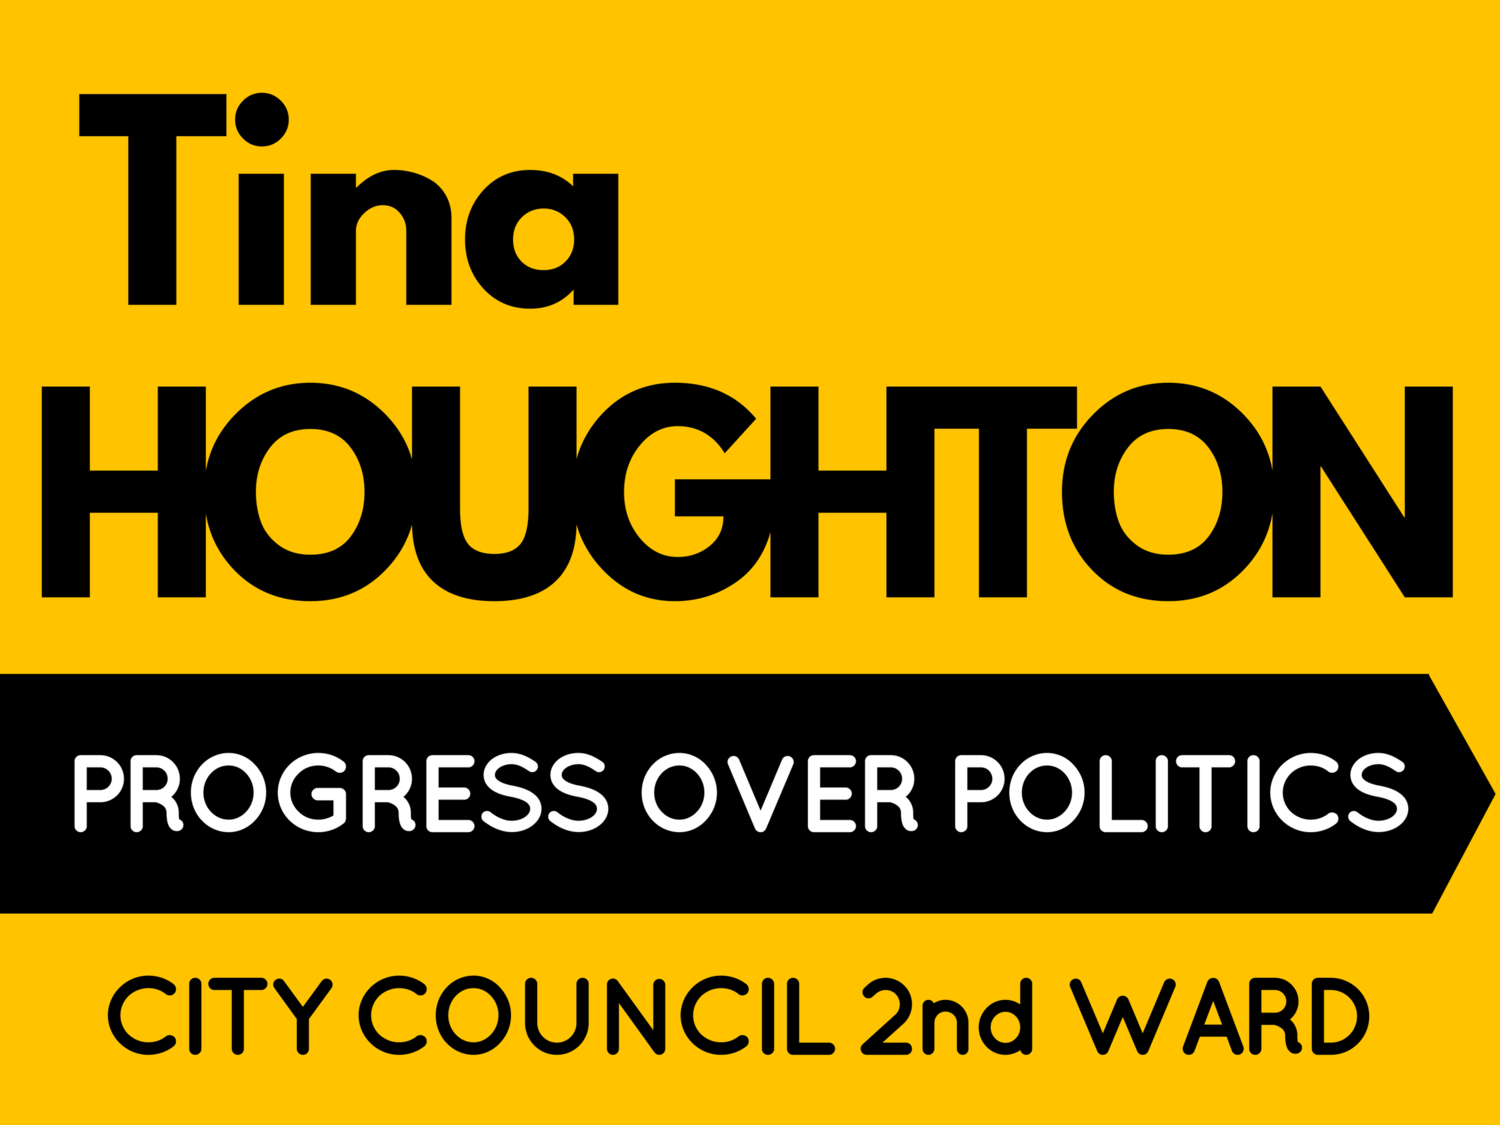 Tina Houghton for City Council